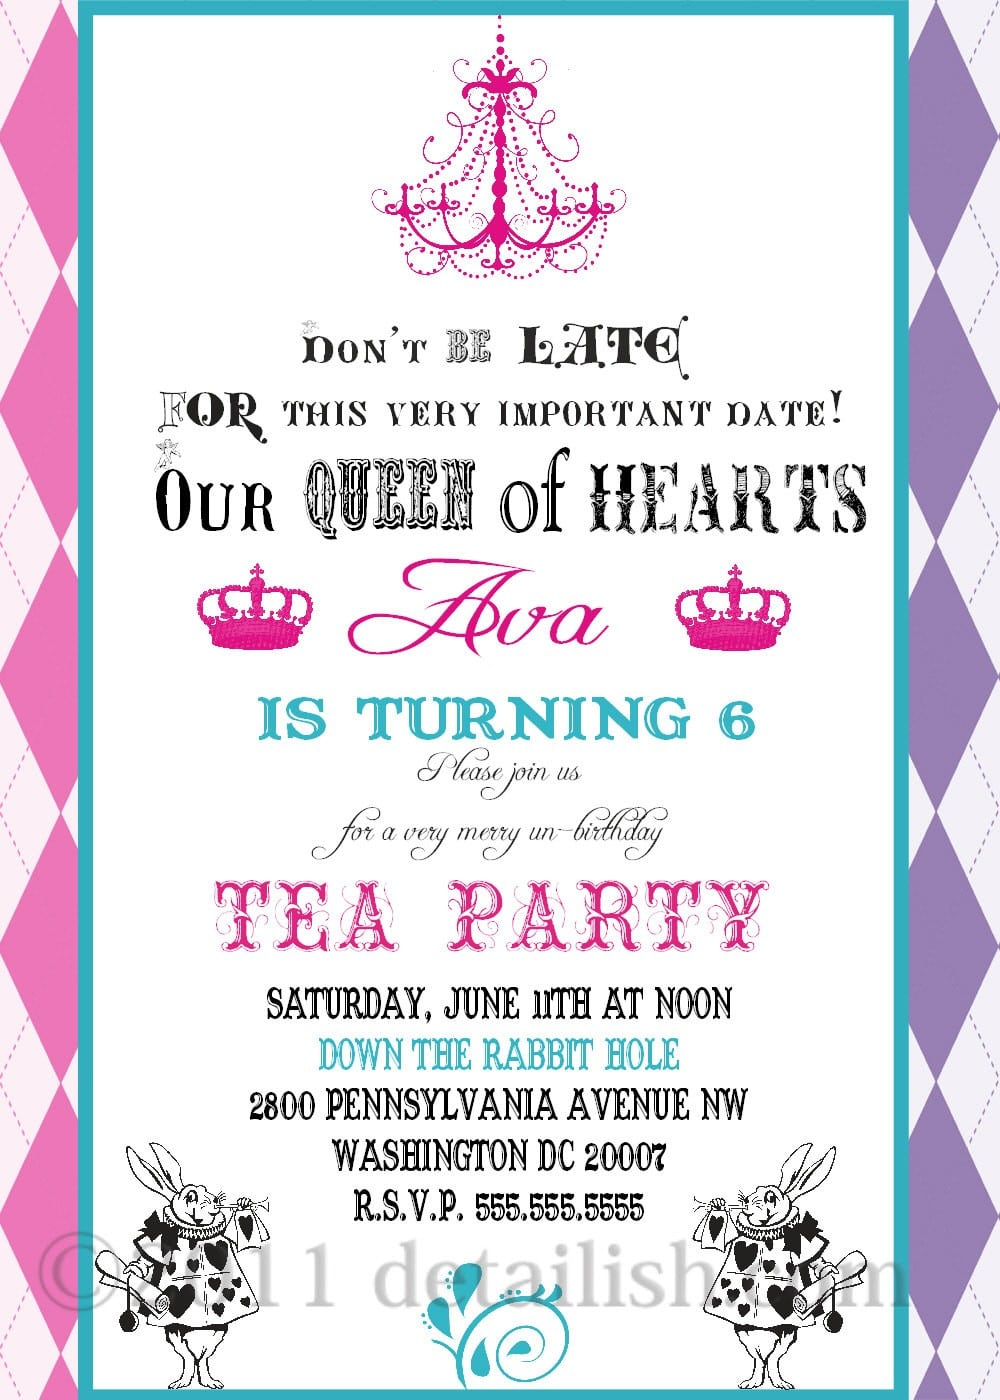 Templates Examples Of Graduation Party Invitations Then And Now